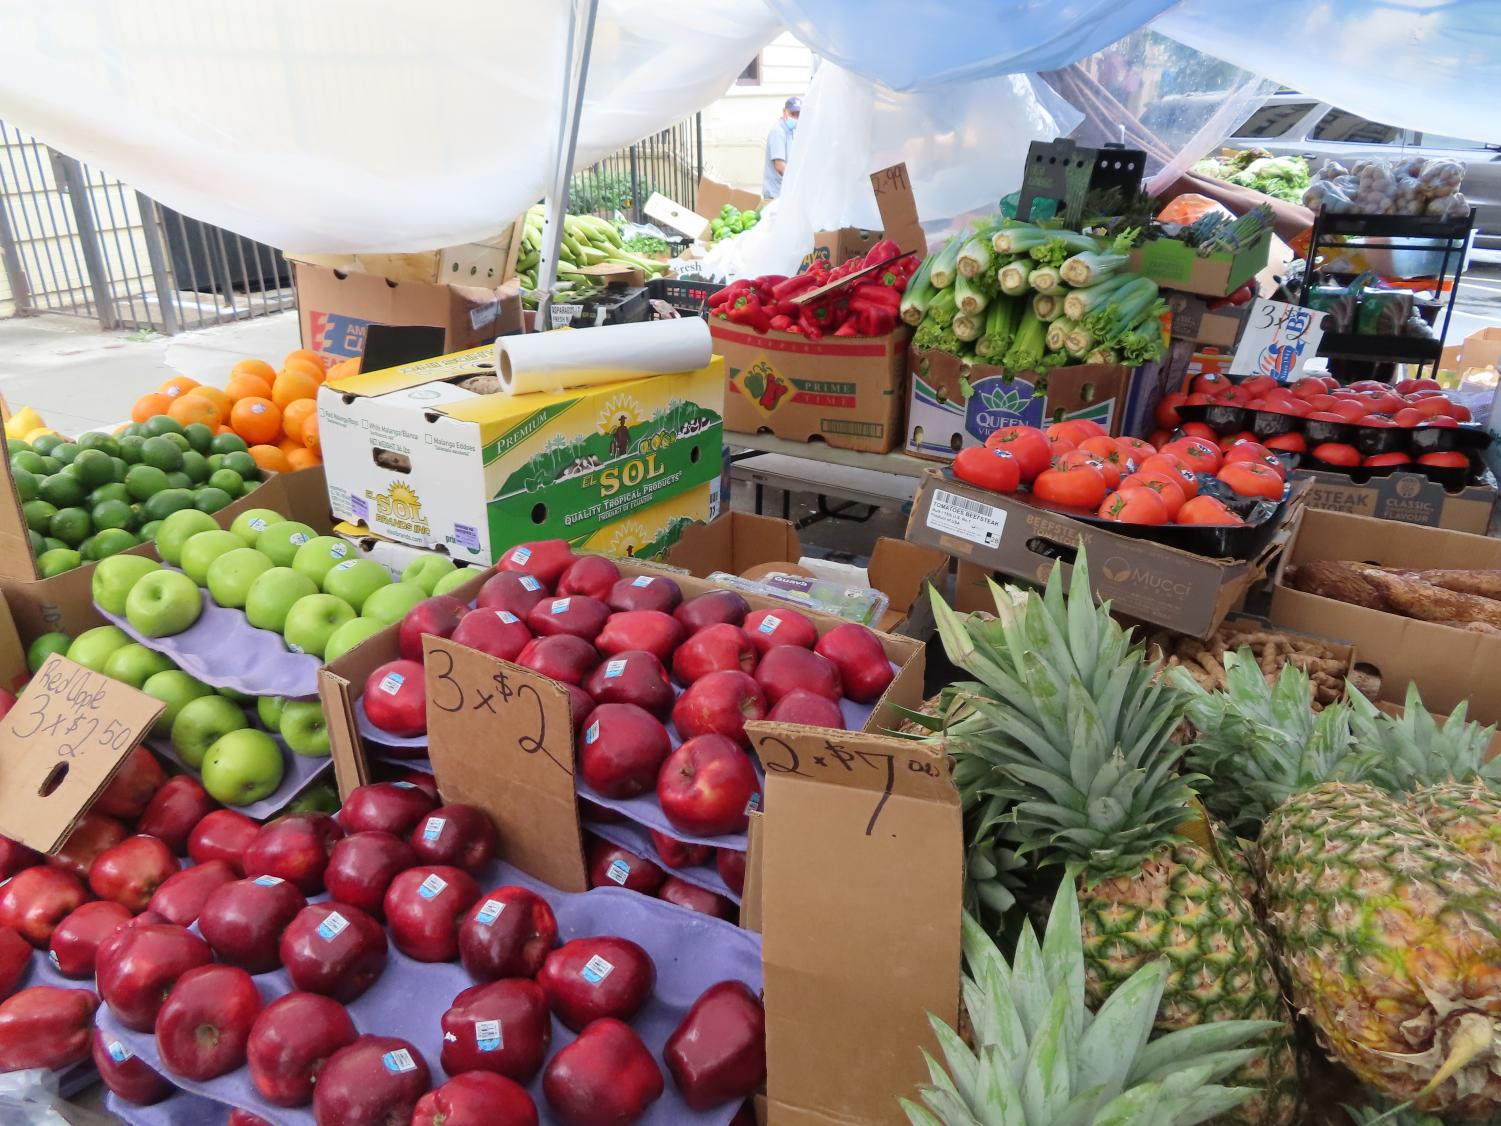 fresh fruit, including apples and pineapples, on display in a market